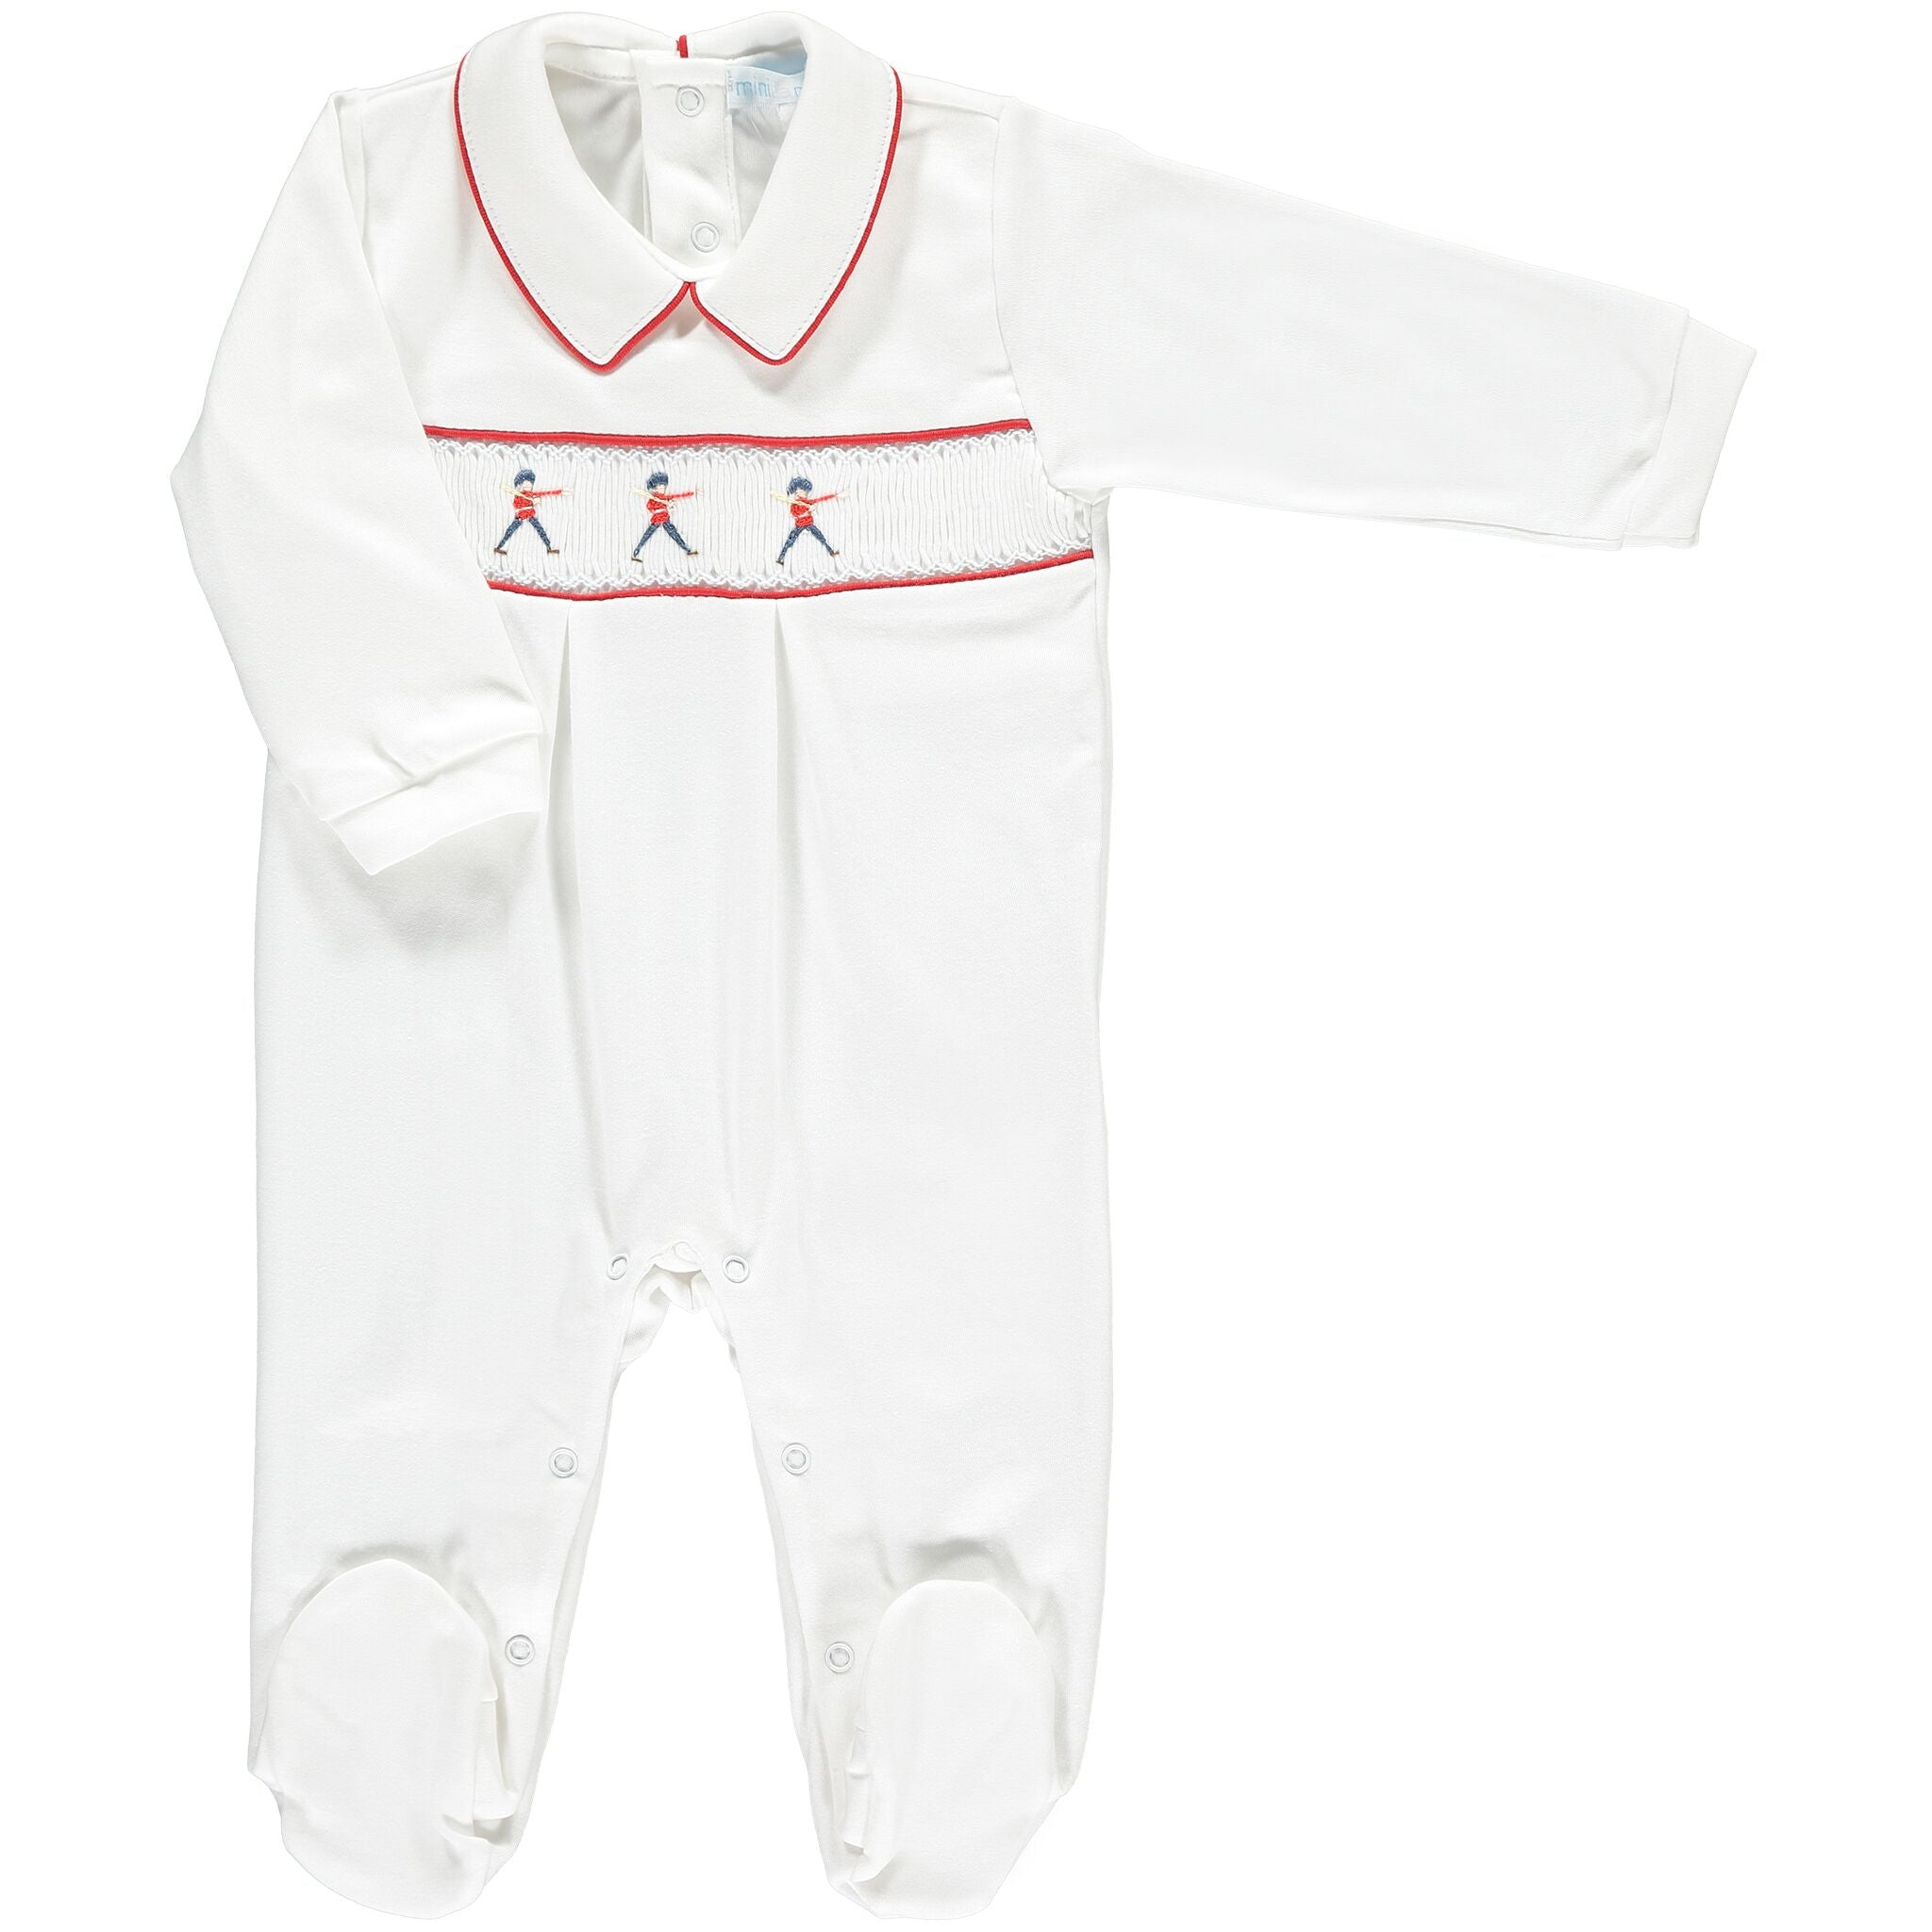 TOY SOLDIER SMOCKED BABY GROW